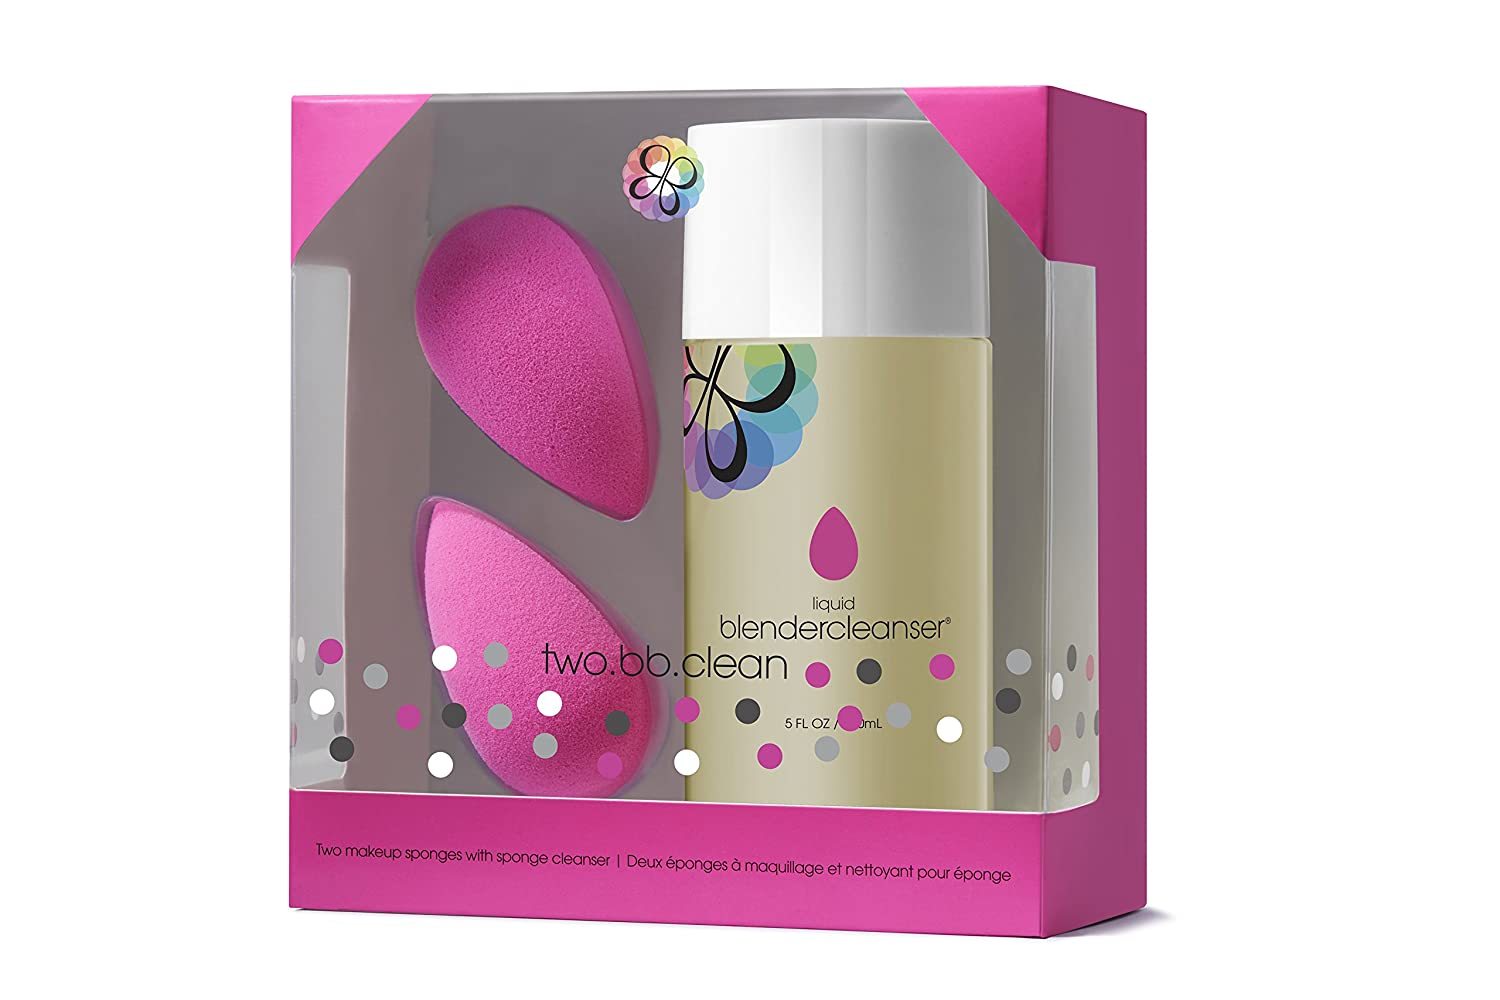 beautyblender two.bb.clean (two original beautyblenders with liquid blendercleanser) Rea.deeming Beauty Inc. 2XSC239